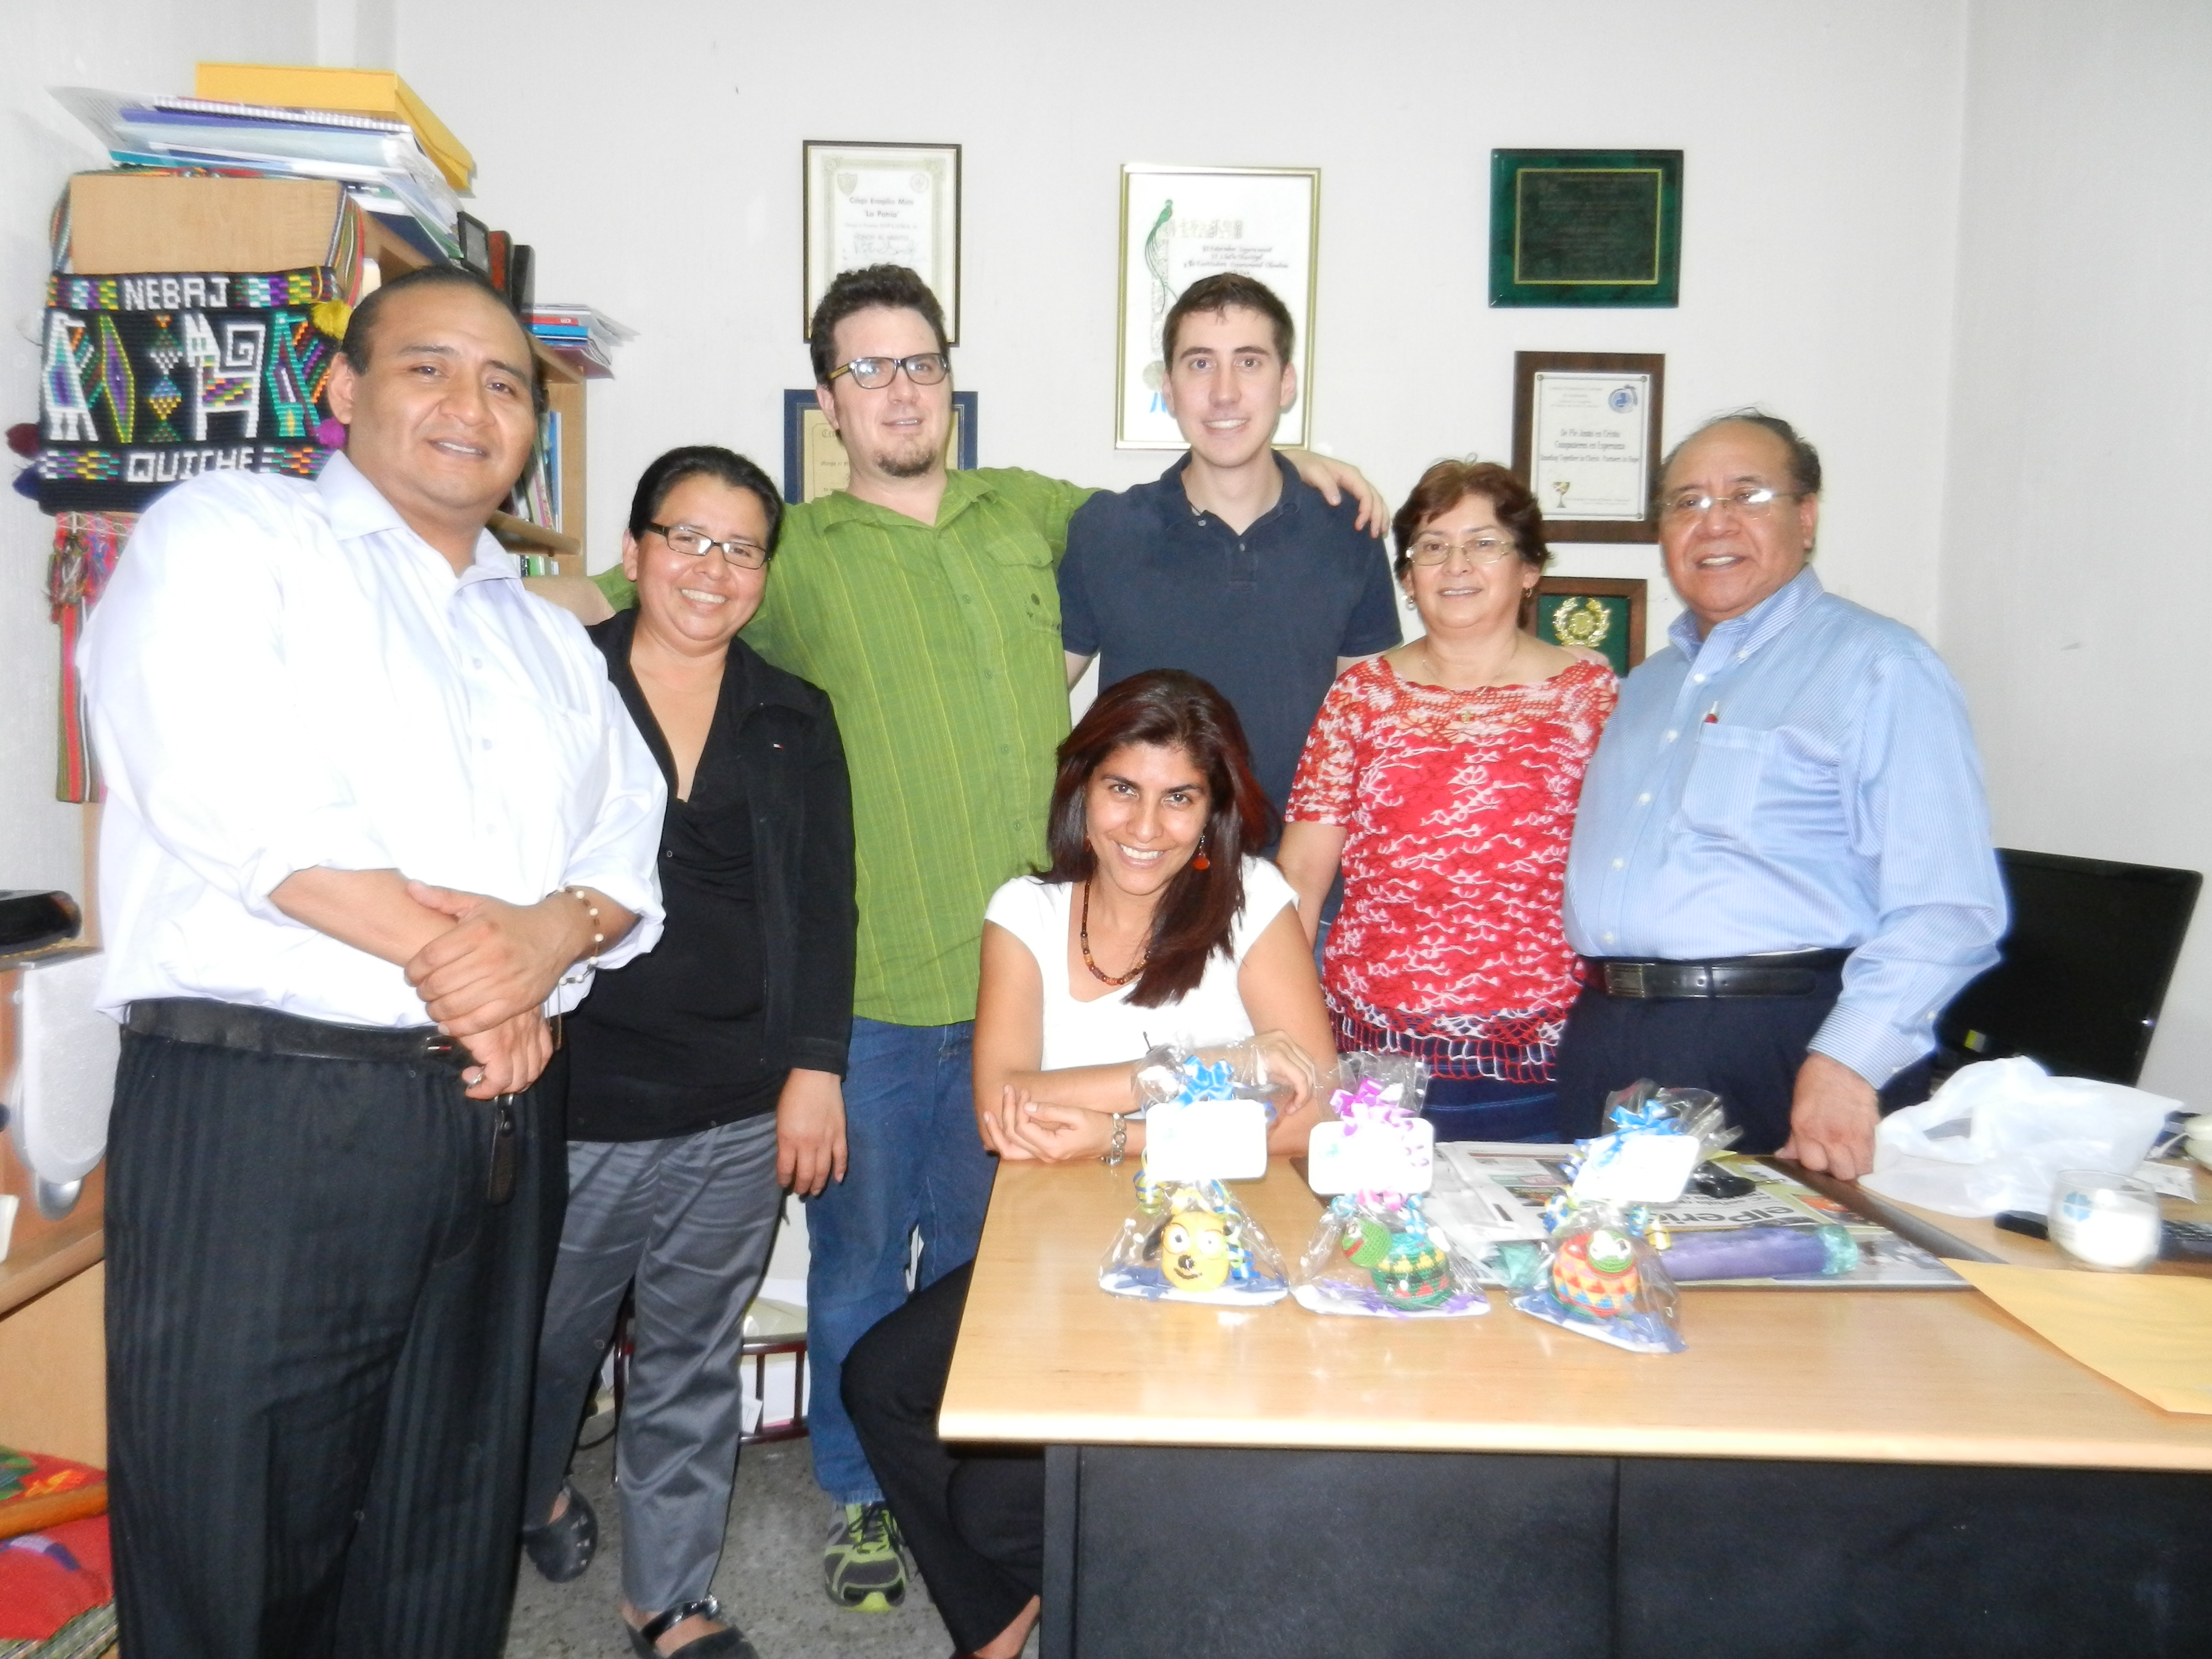 Warren and I with the members of the Concejo Ecuménico team.<br>From left to right: Bairon, Ana Maria, Warren, Garred, Mayra, Nora, and Vitalino<br>Not pictured: Misael.